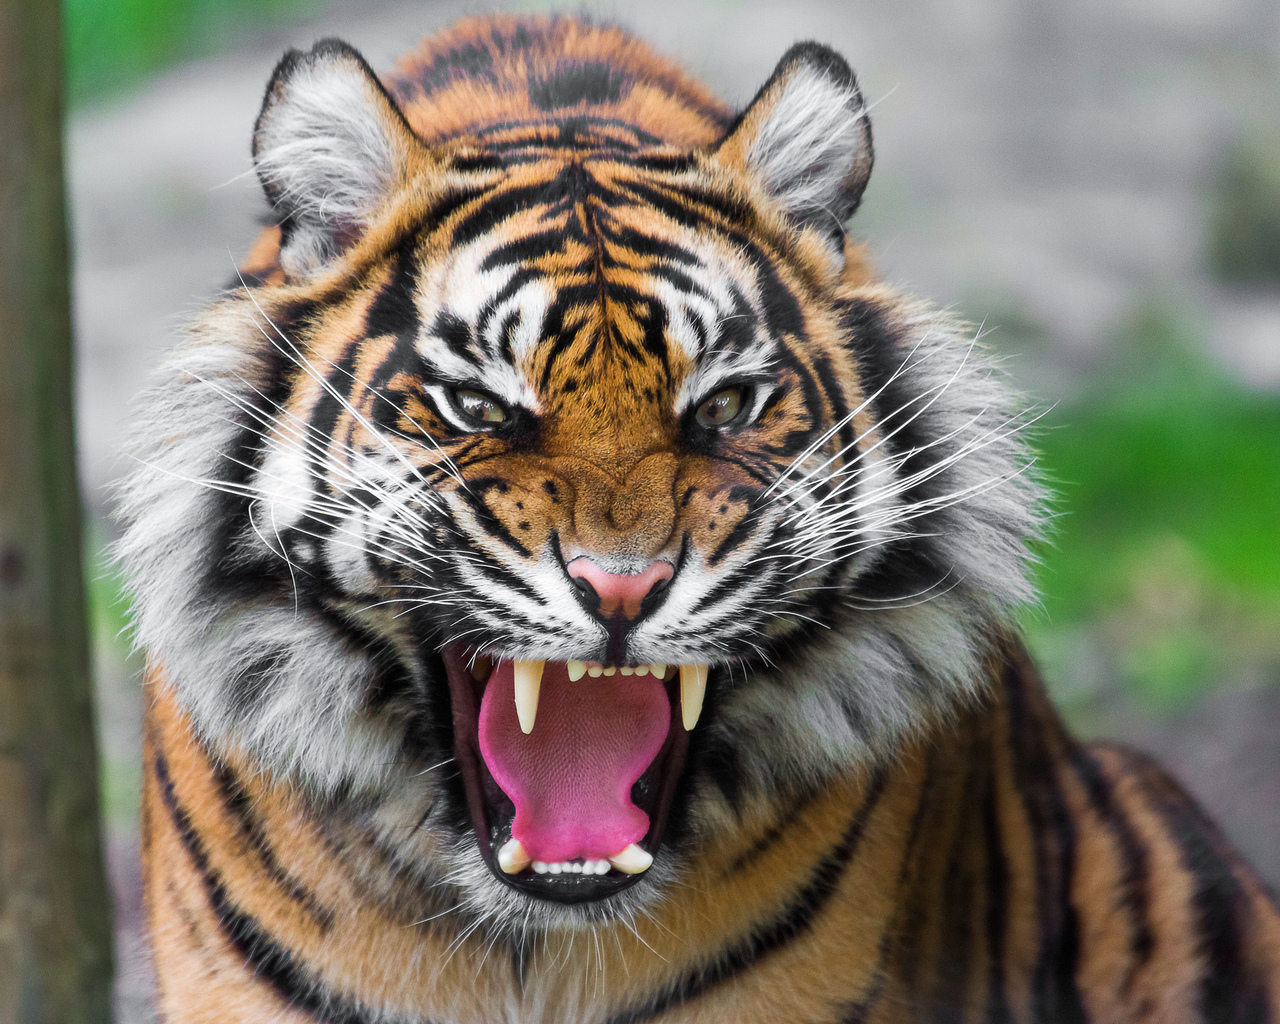 15470 download wallpaper Animals, Tigers screensavers and pictures for free